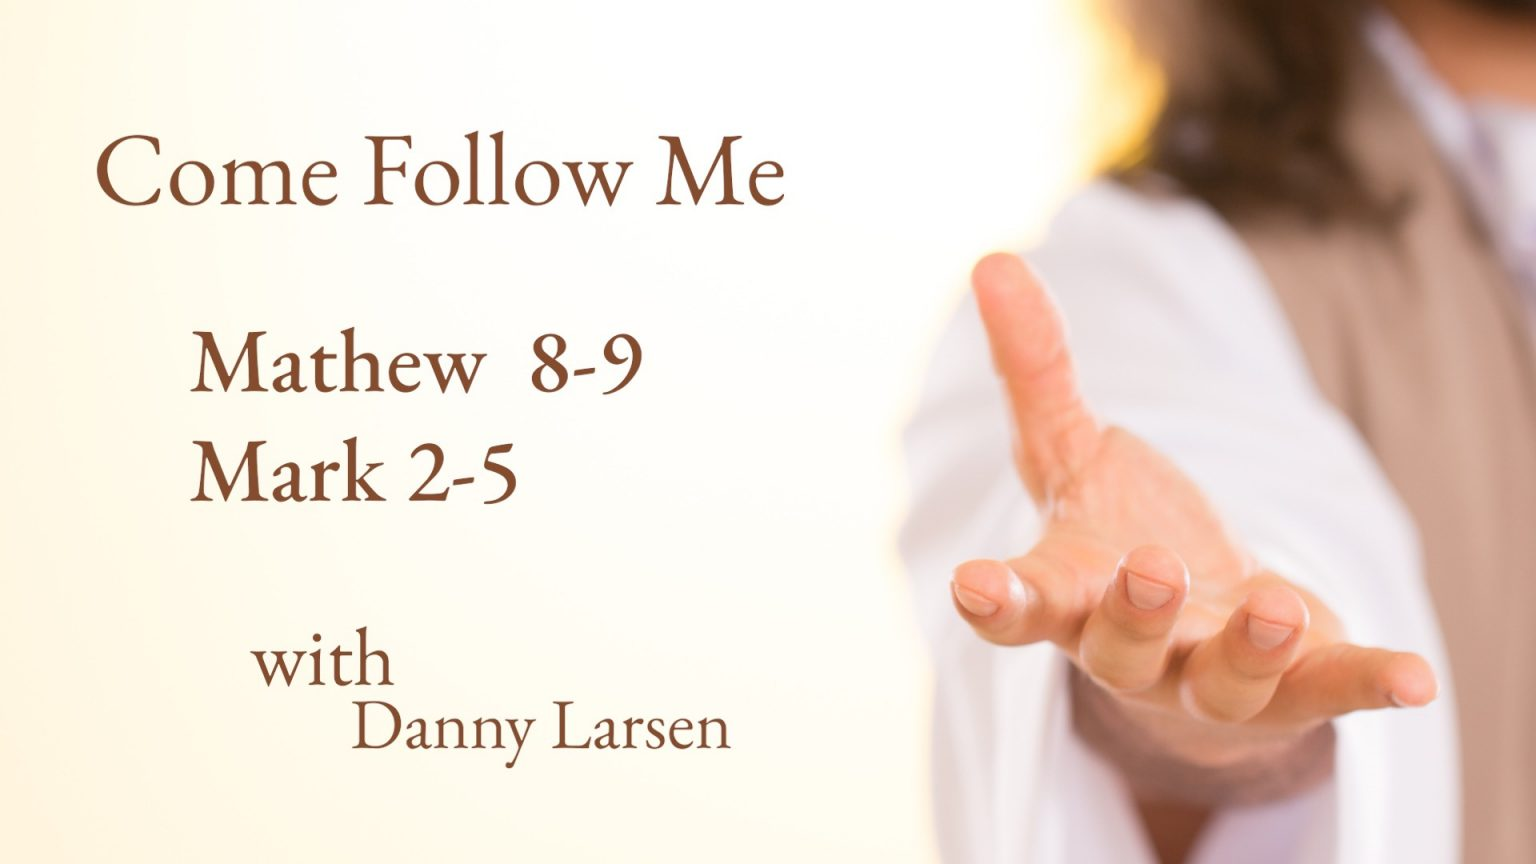 Matthew 8-9; Mark 2-5 – Come Follow Me